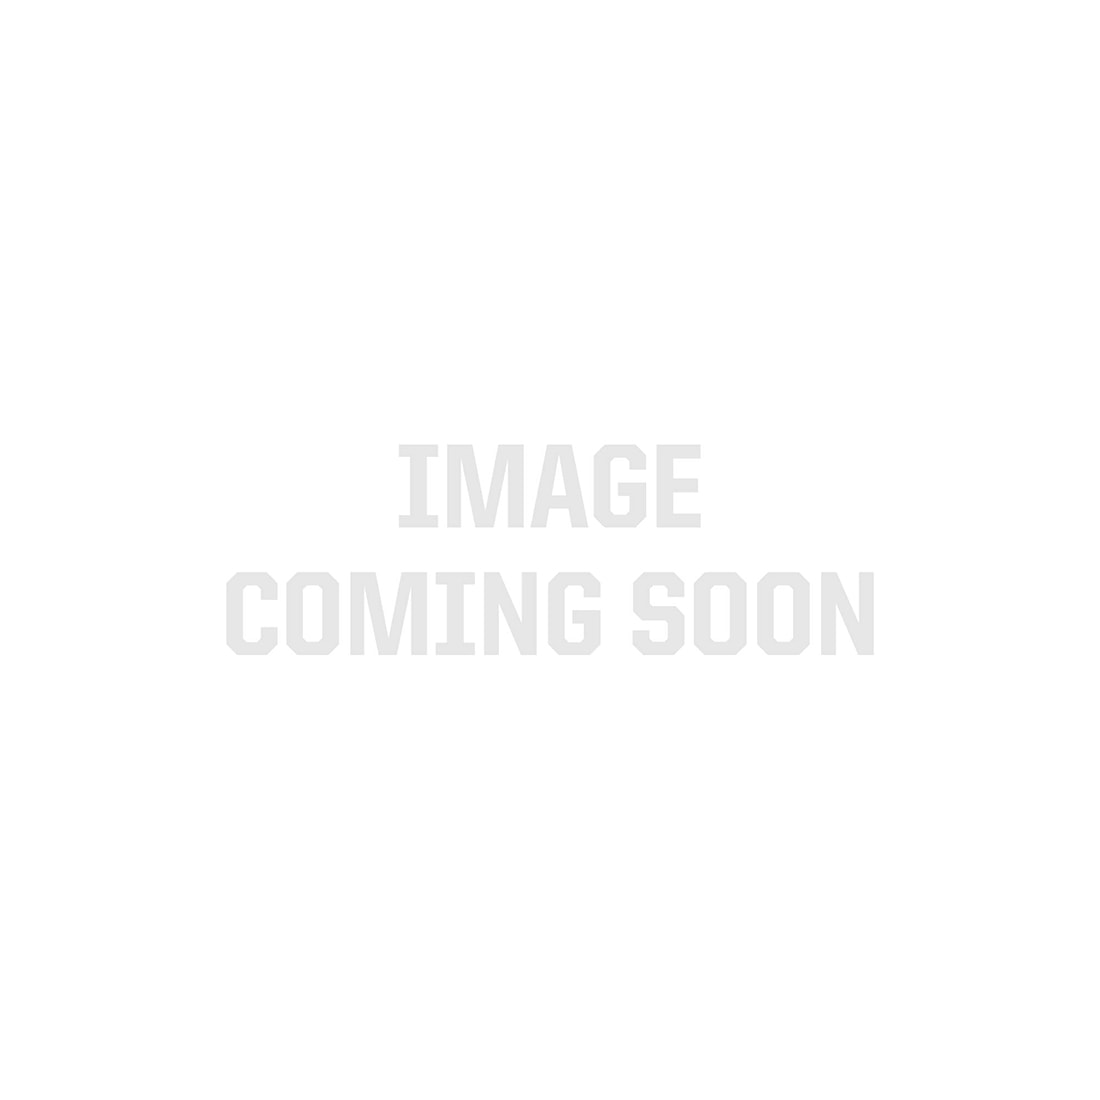 2 Conductor wire - 18 AWG cable, by the foot